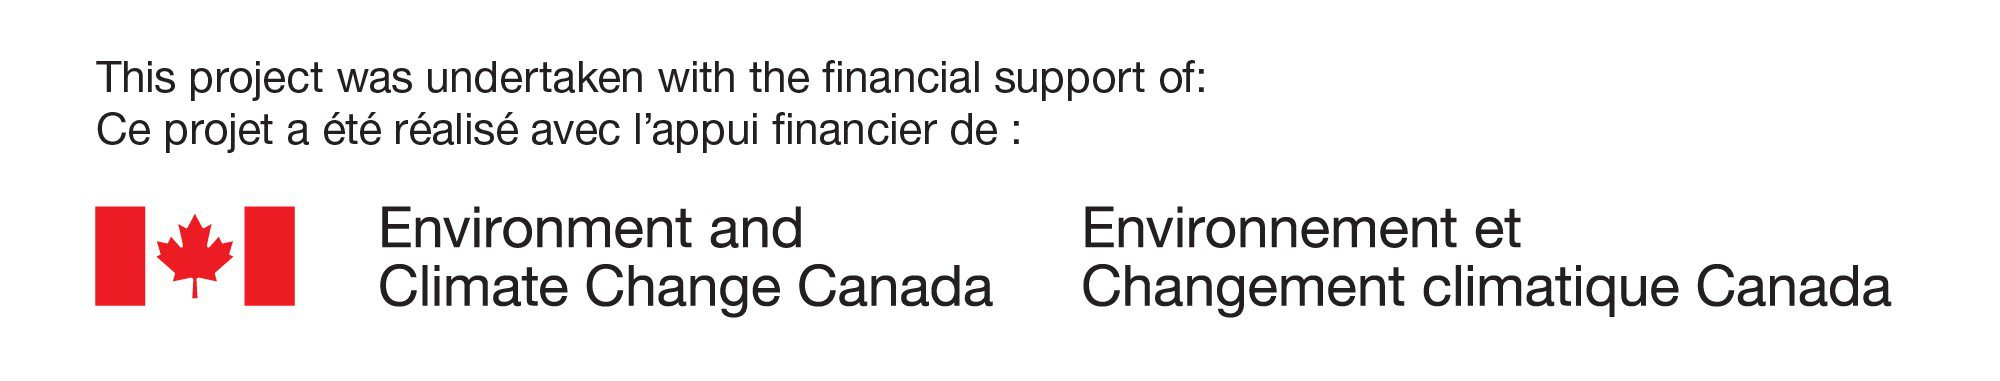 This project was undertaken with the financial support: Environment and Climate Change Canada